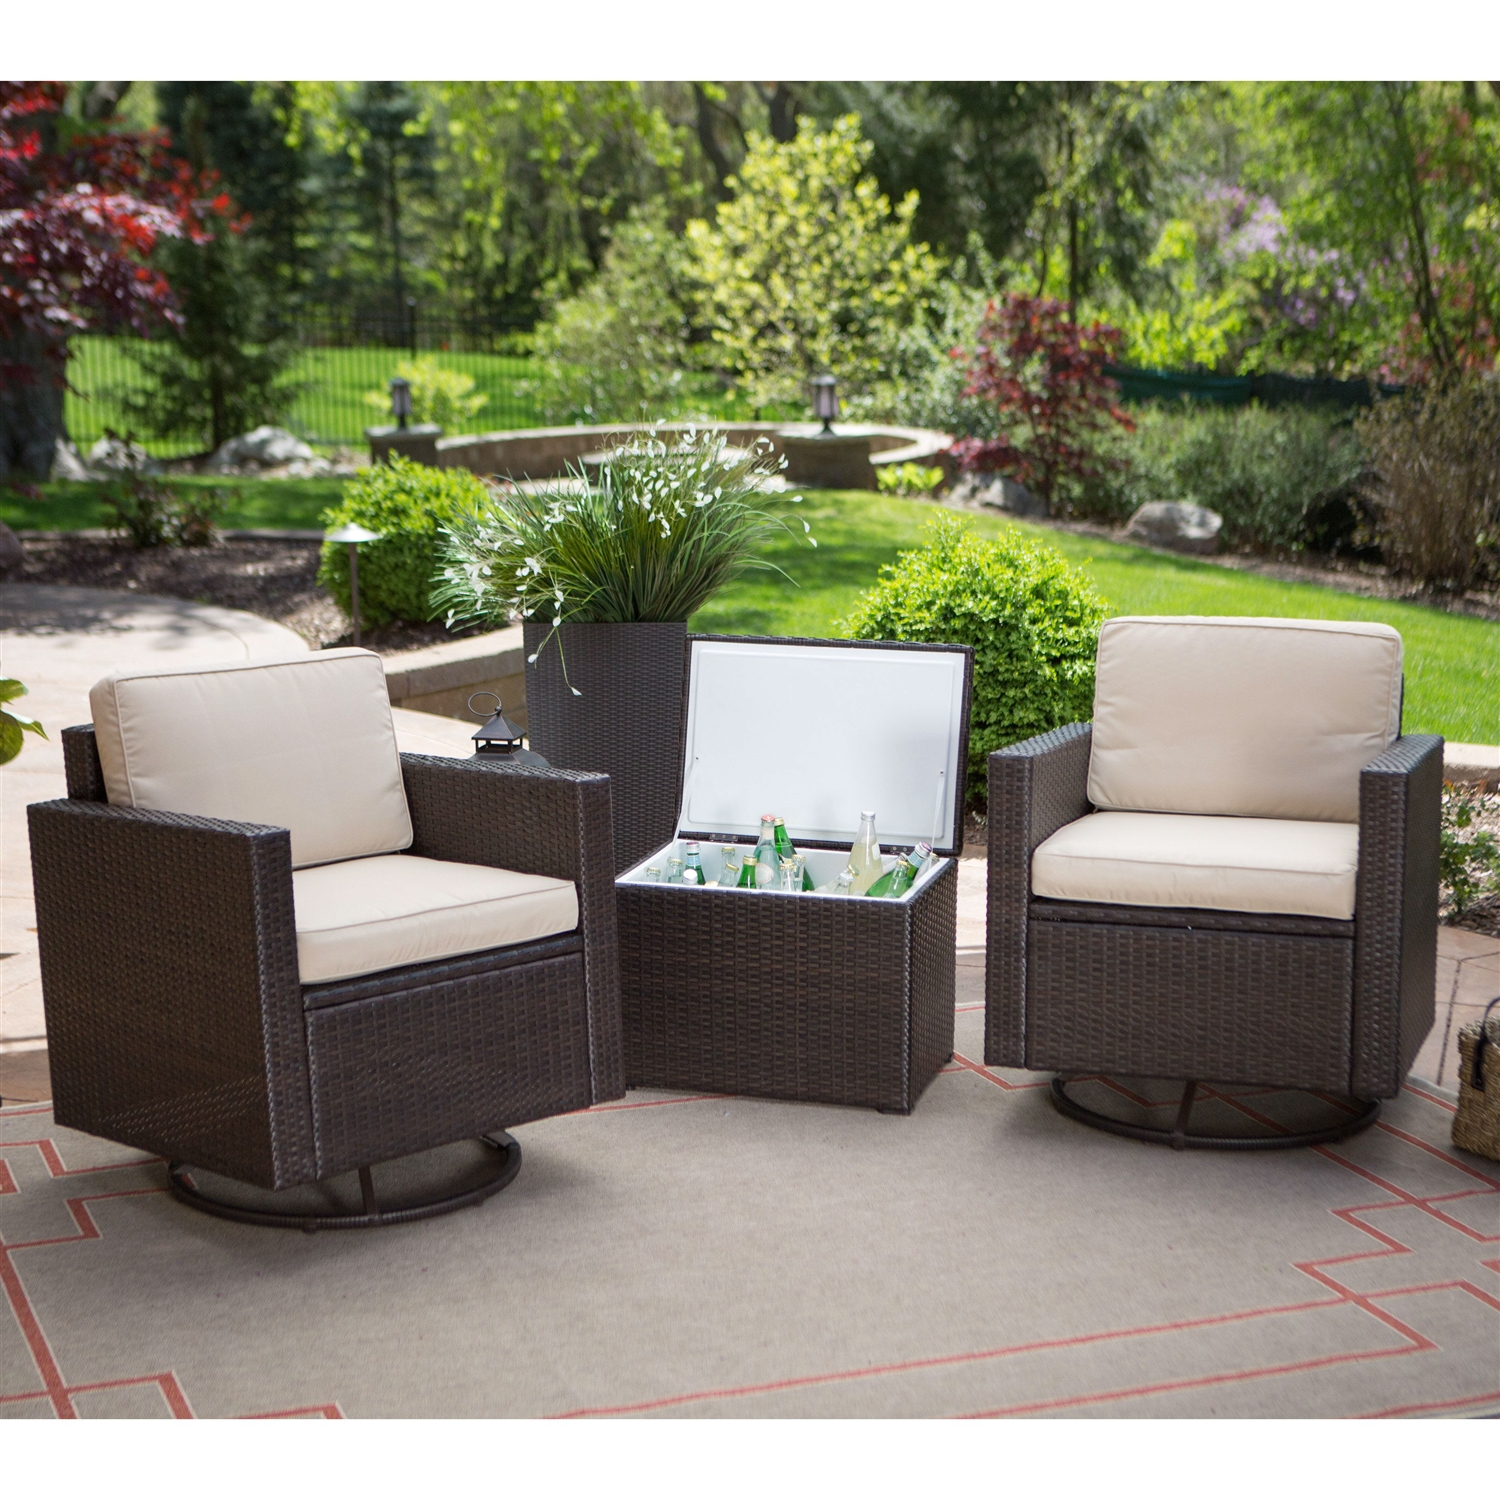 Good Outdoor Wicker Resin 3 Piece Patio Furniture Set With 2 Chairs And Cooler  Storage Side